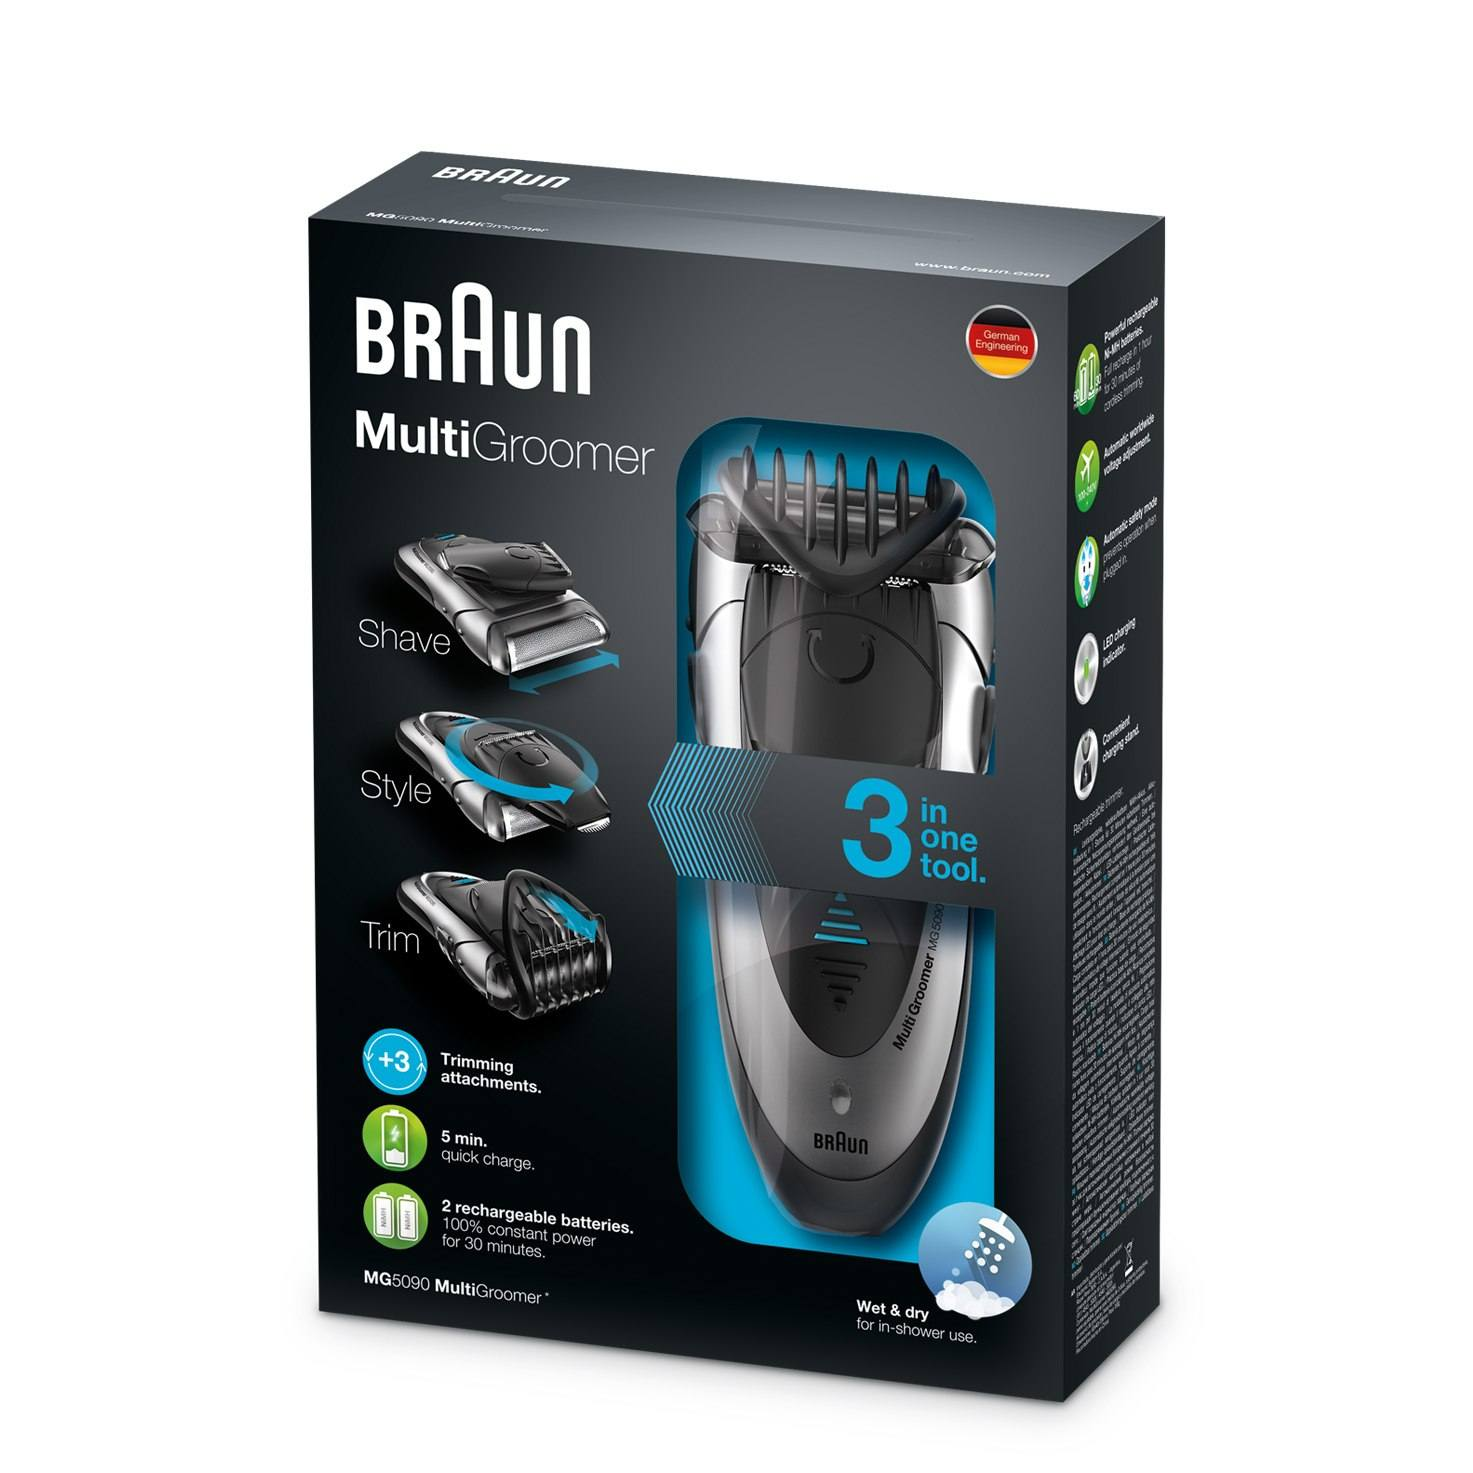 Braun multi groomer MG5050